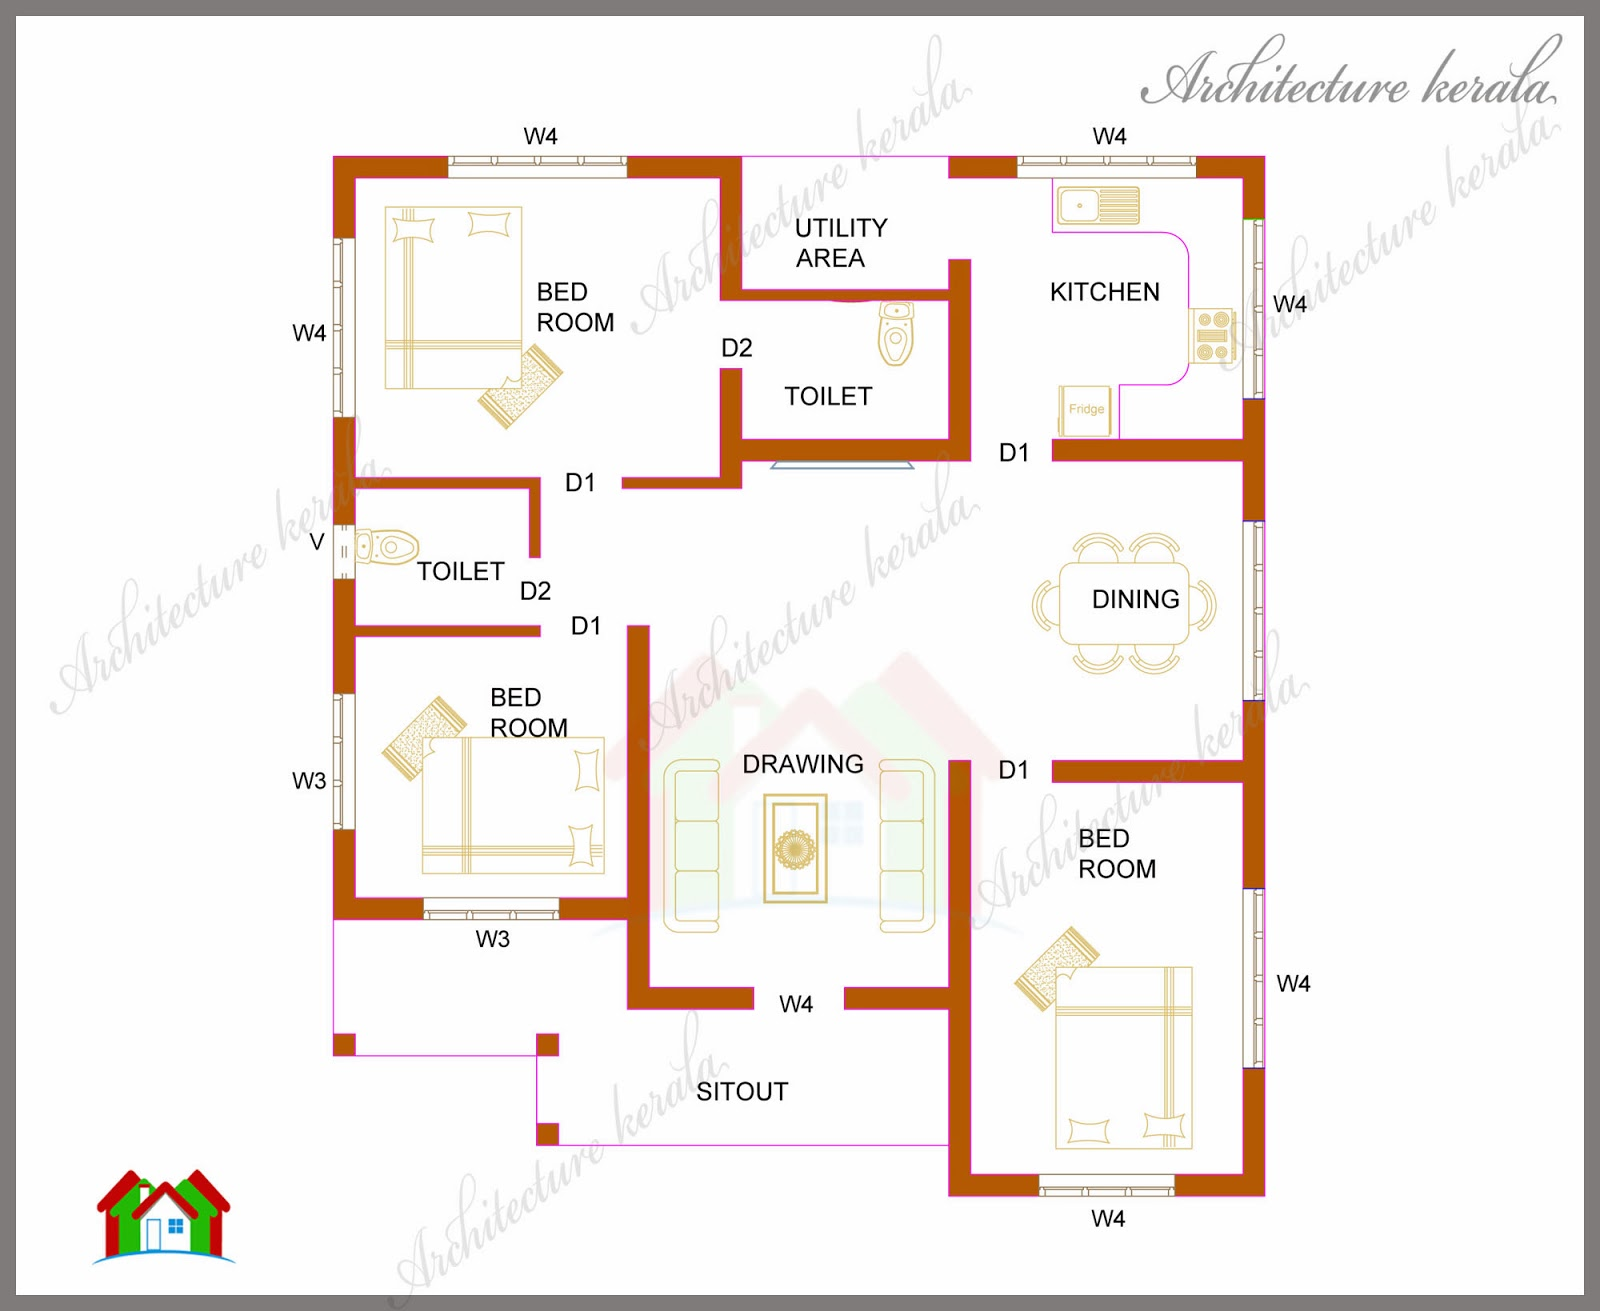 3 bedroom house plans. THREE BEDROOMS IN 1200 SQUARE FEET KERALA HOUSE PLAN